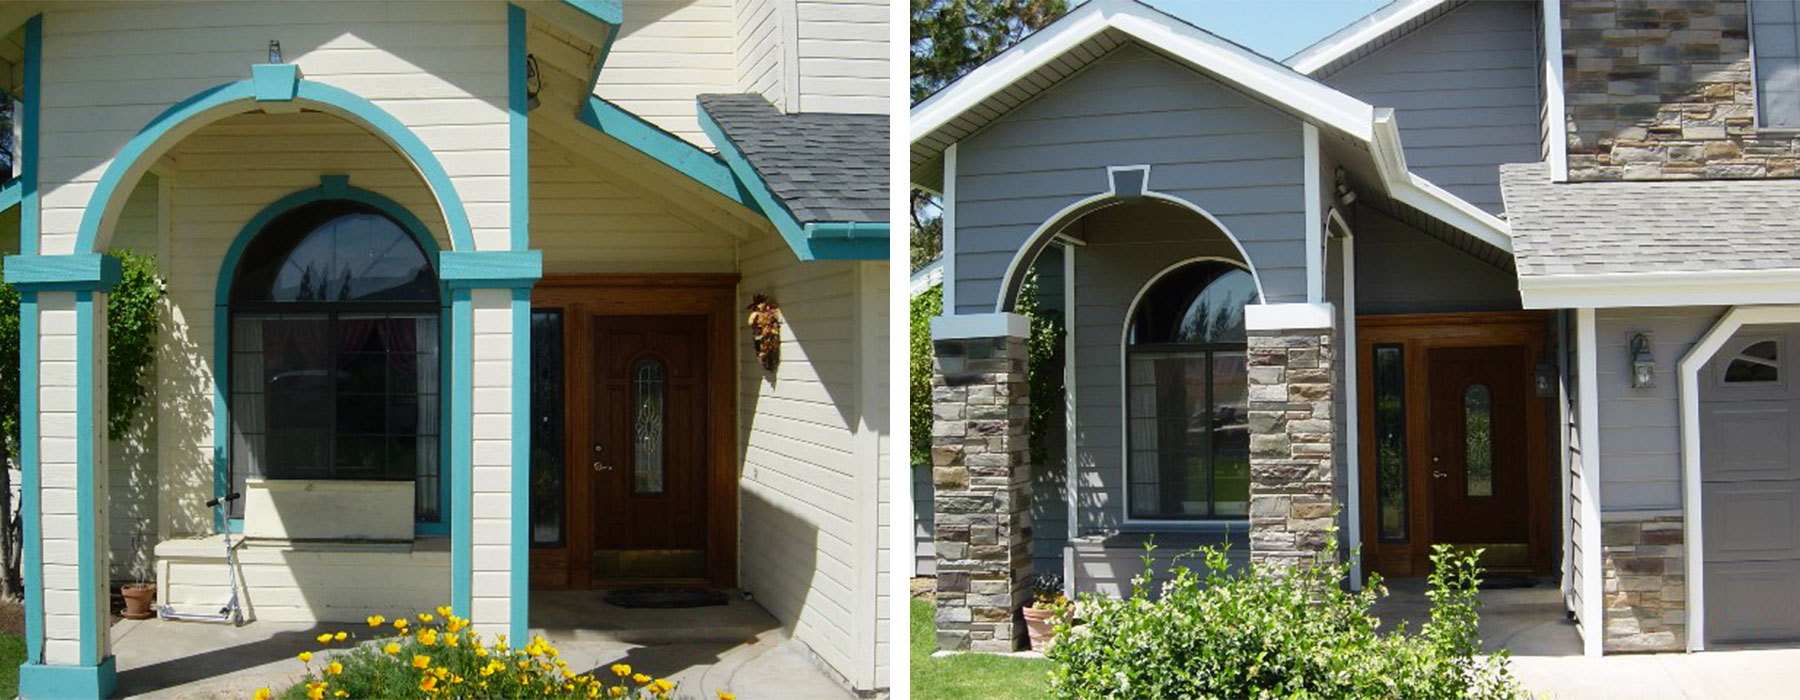 House siding before and after